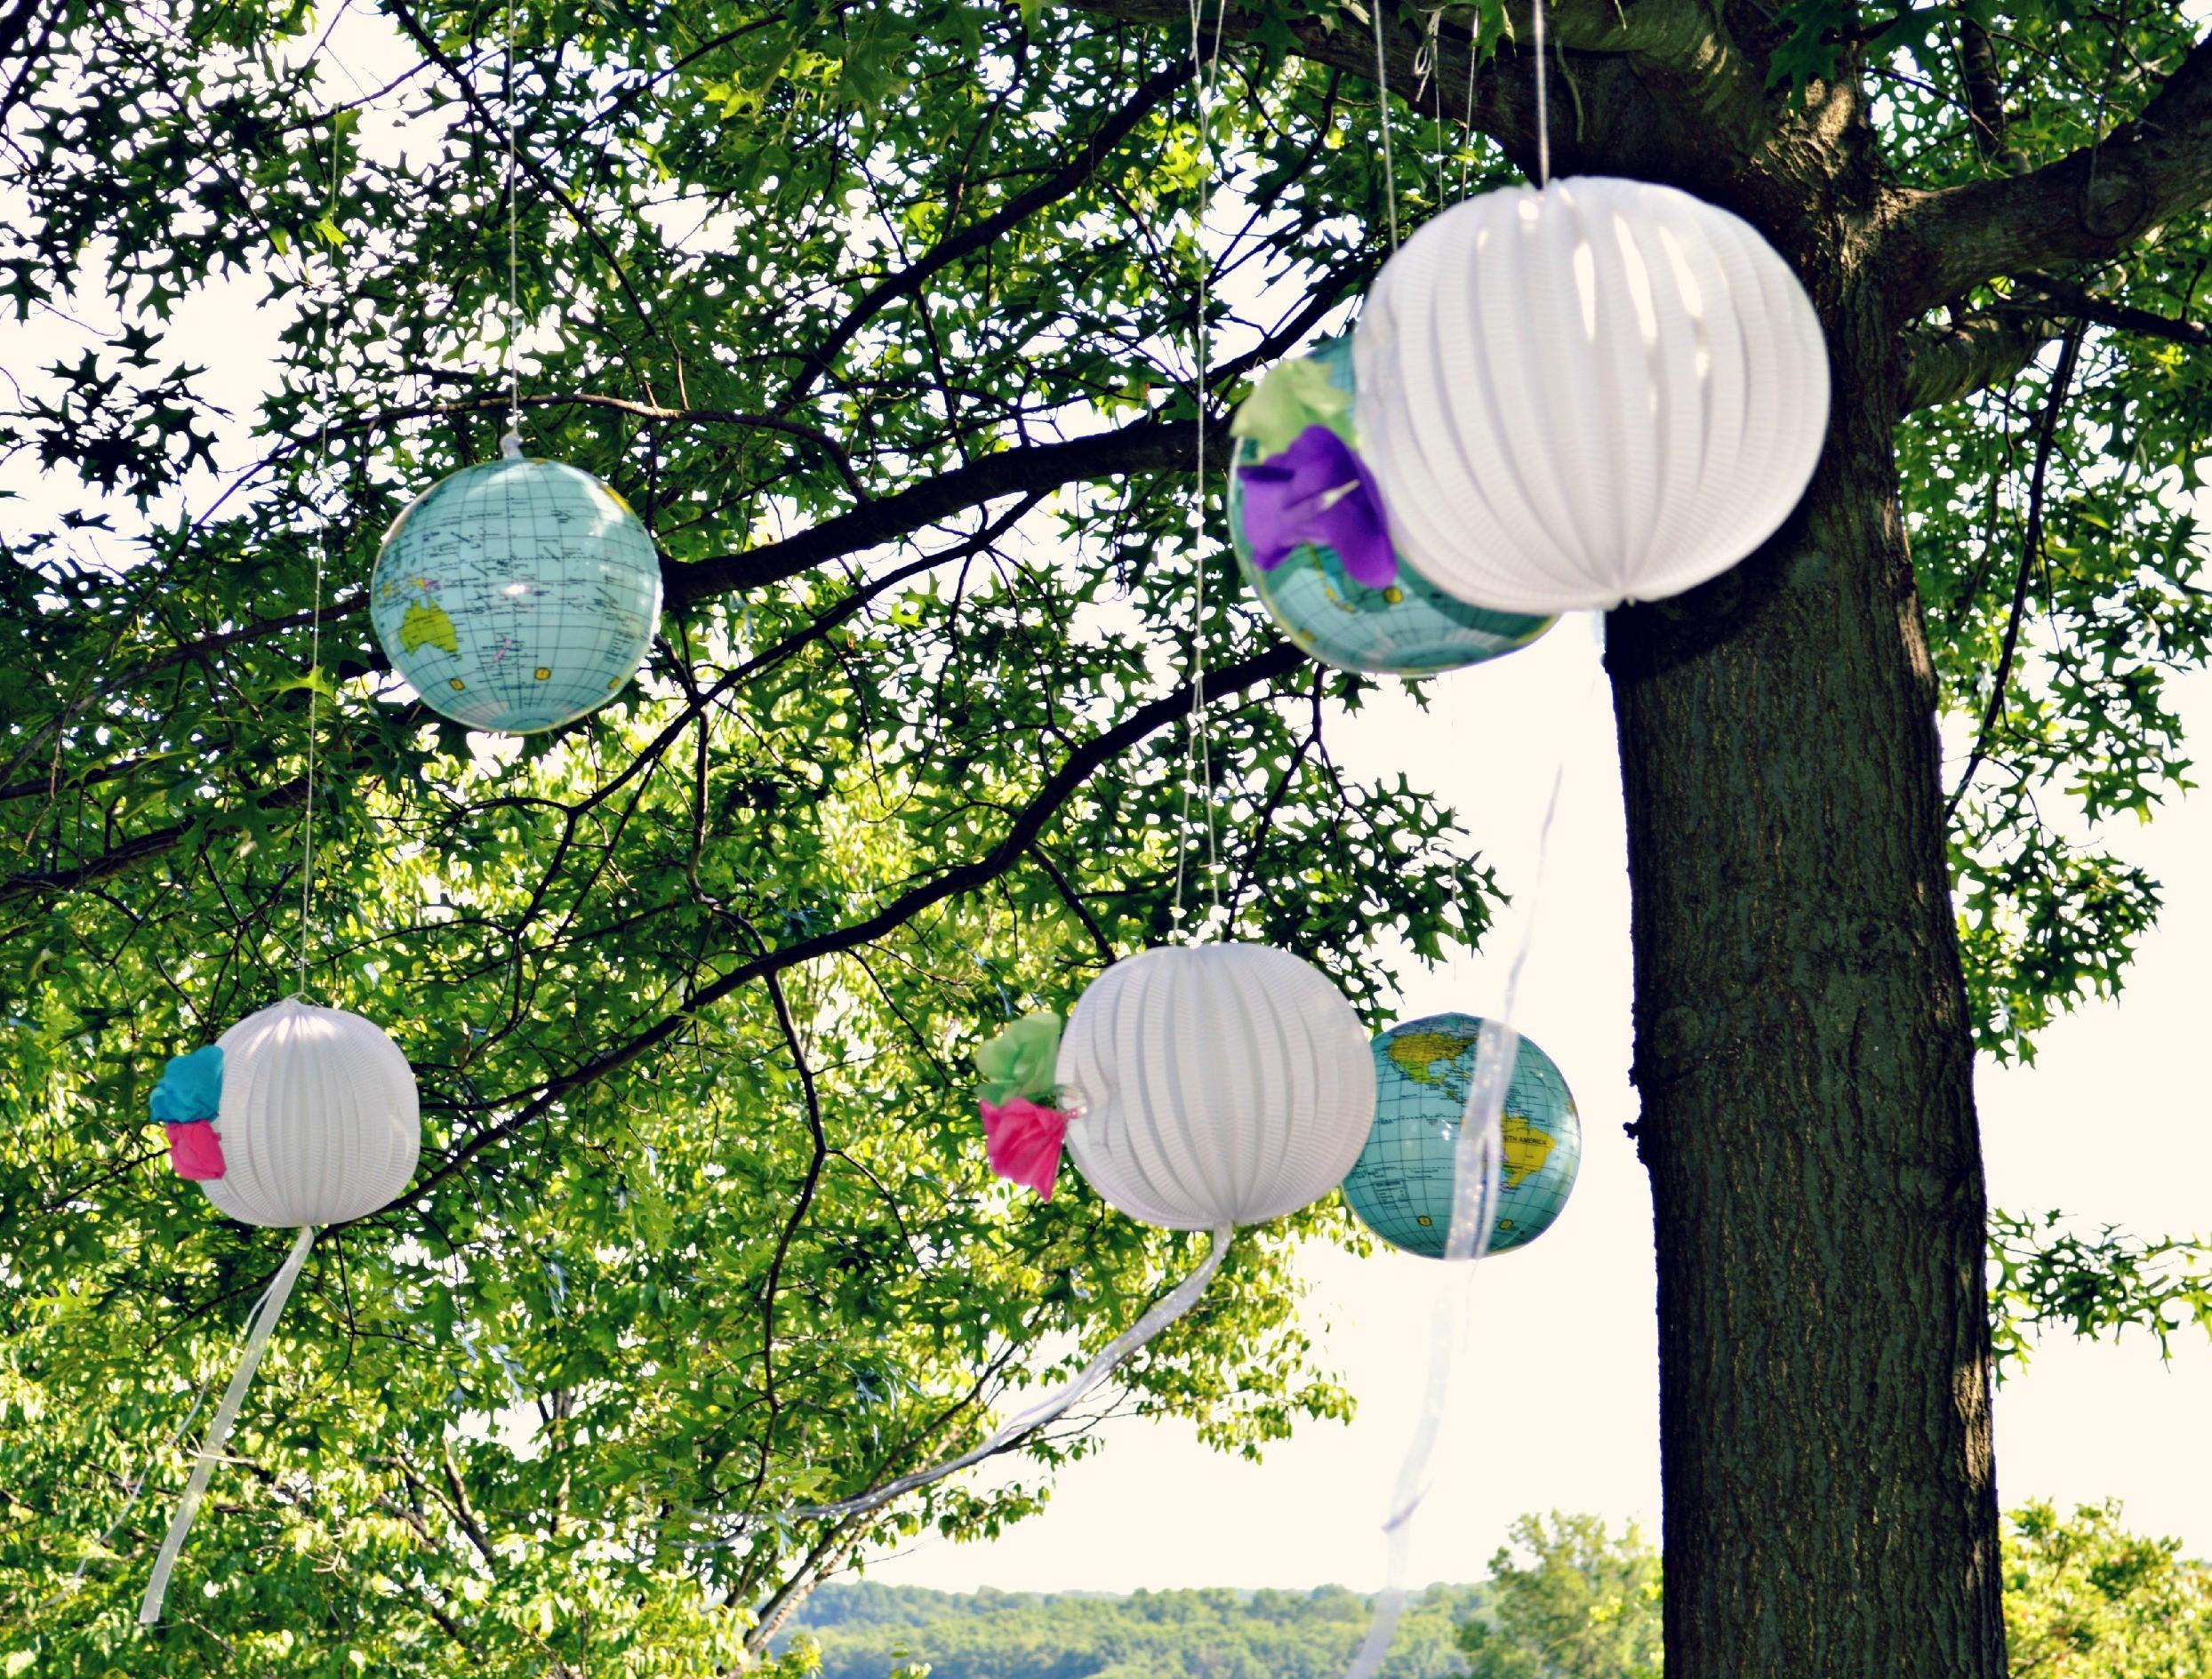 Diy Shower Decor Hanging Globes Lanterns Tissue Paper Flowers Some Kind Lovely Ride